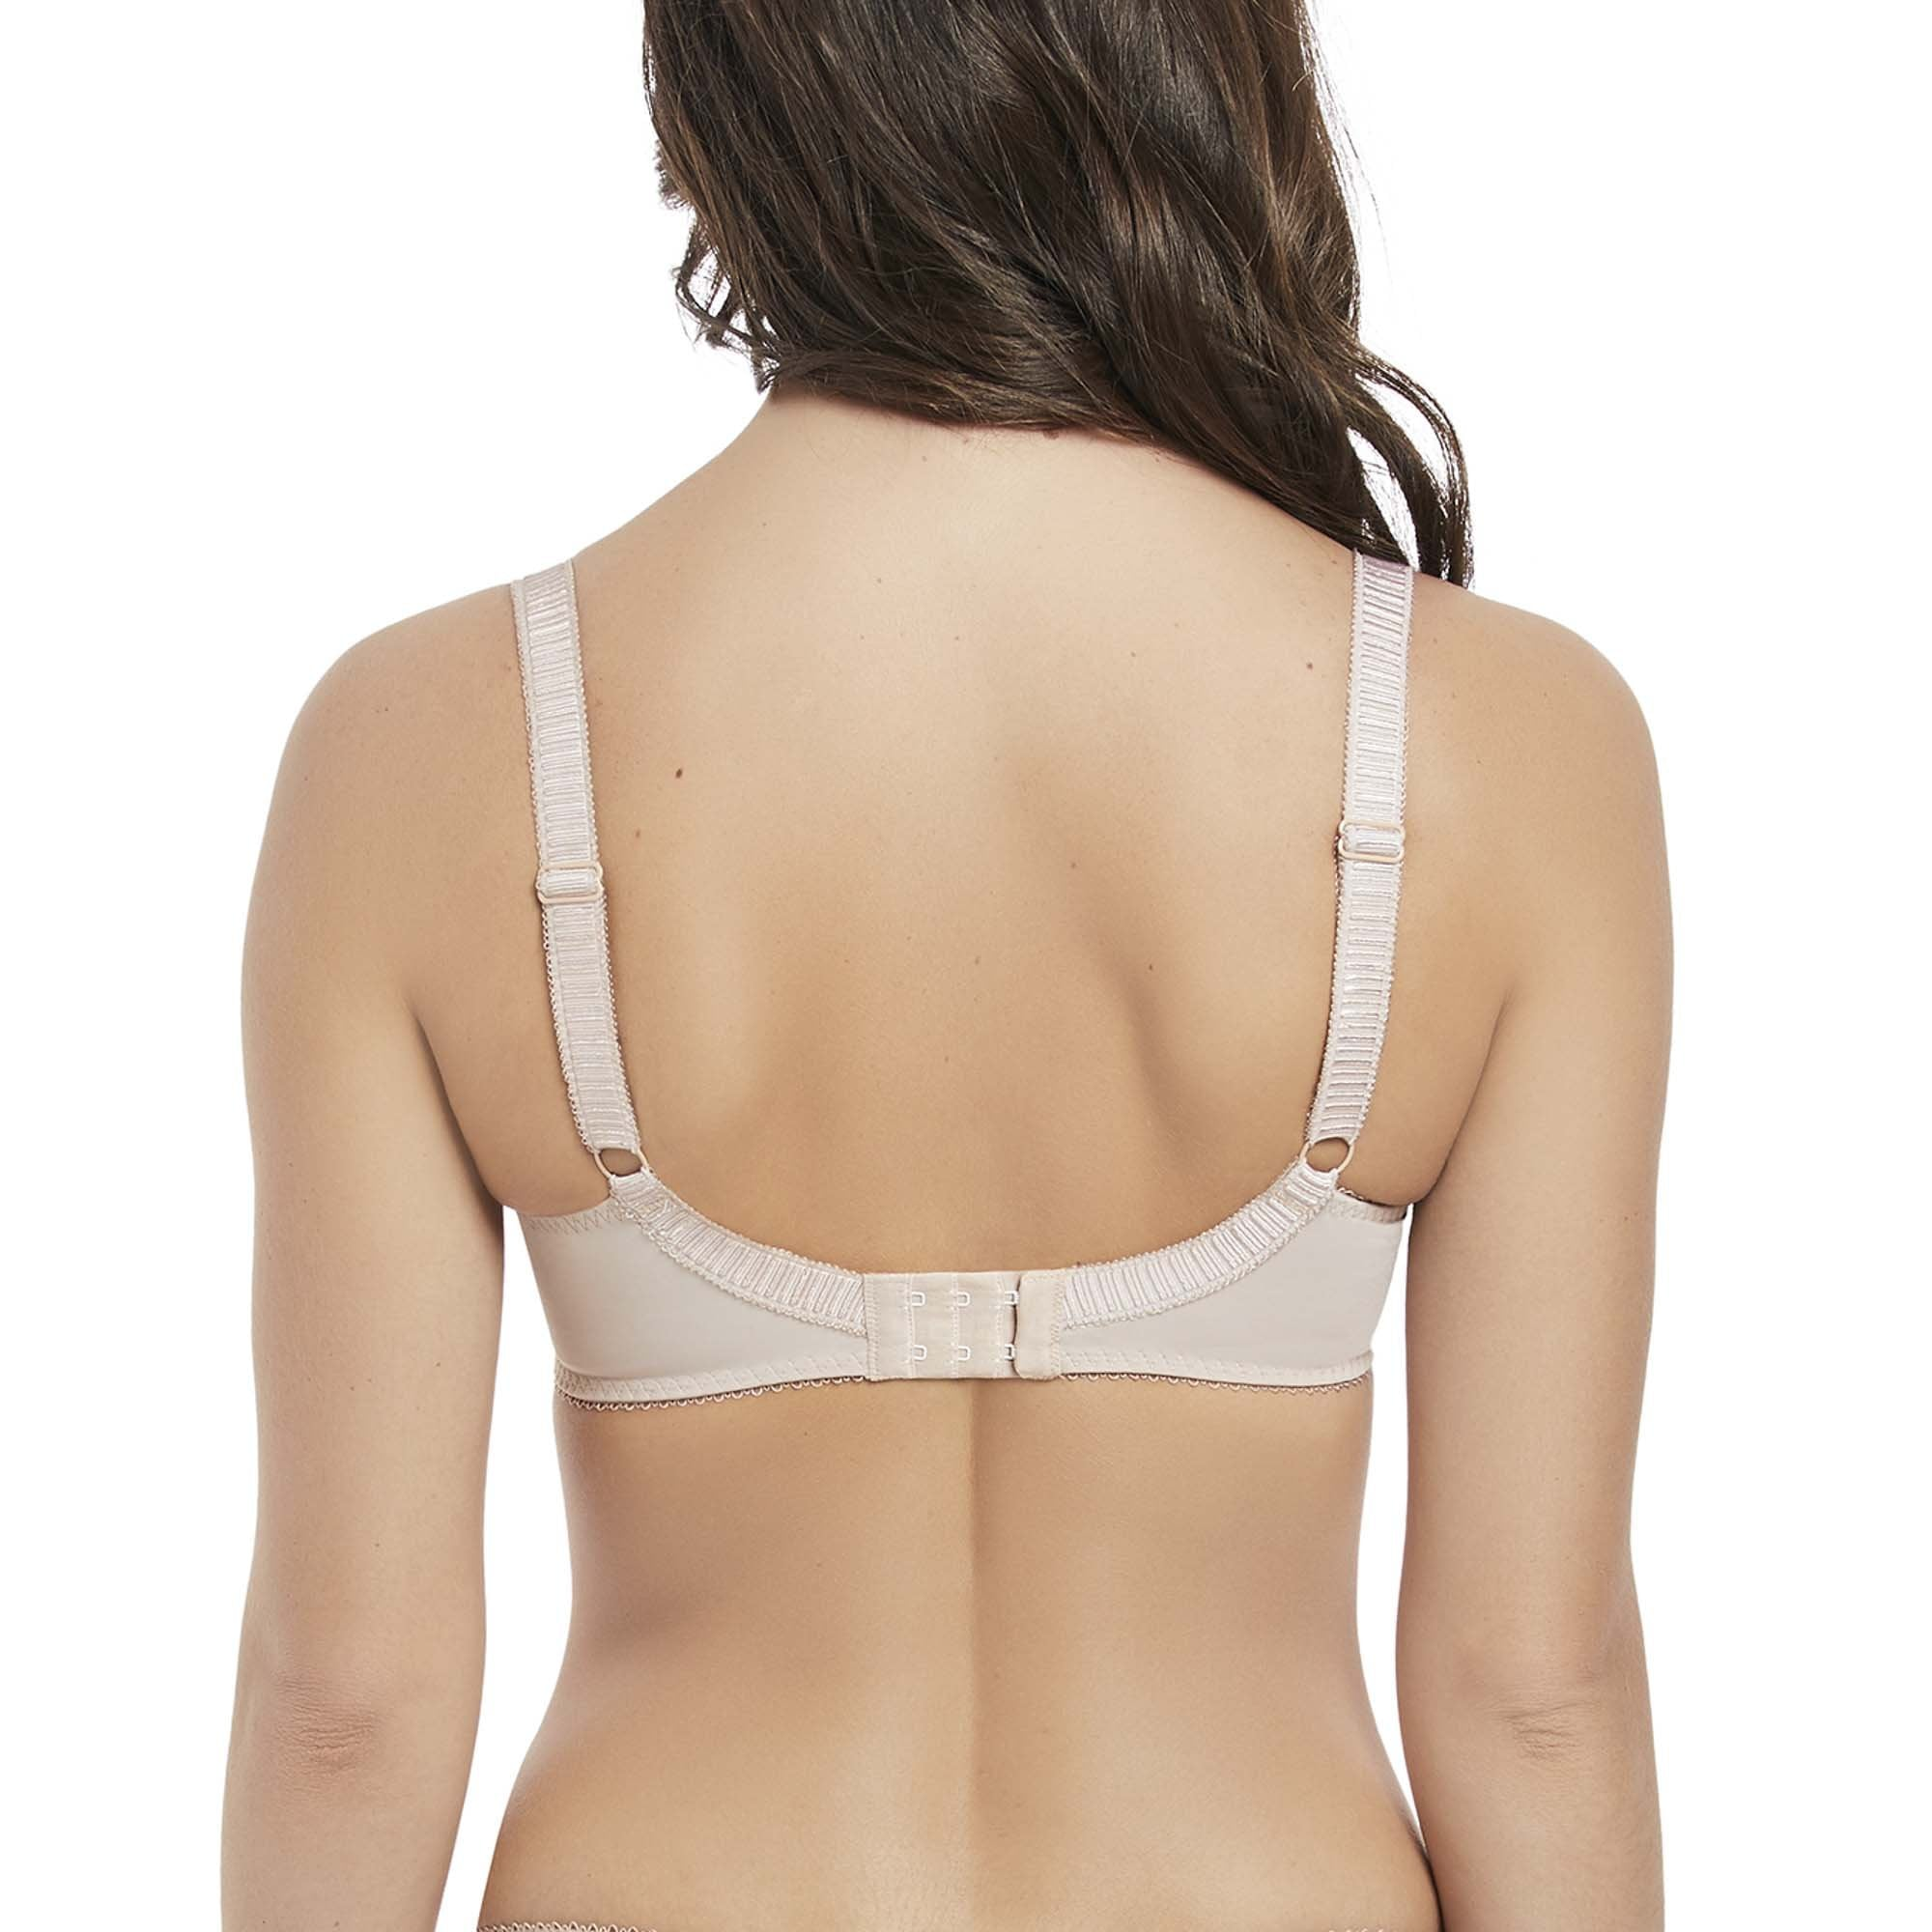 5a7e9ca8a FANTASIE Marianna UW Side Support Plunge Bra in Latte - Woman from ...